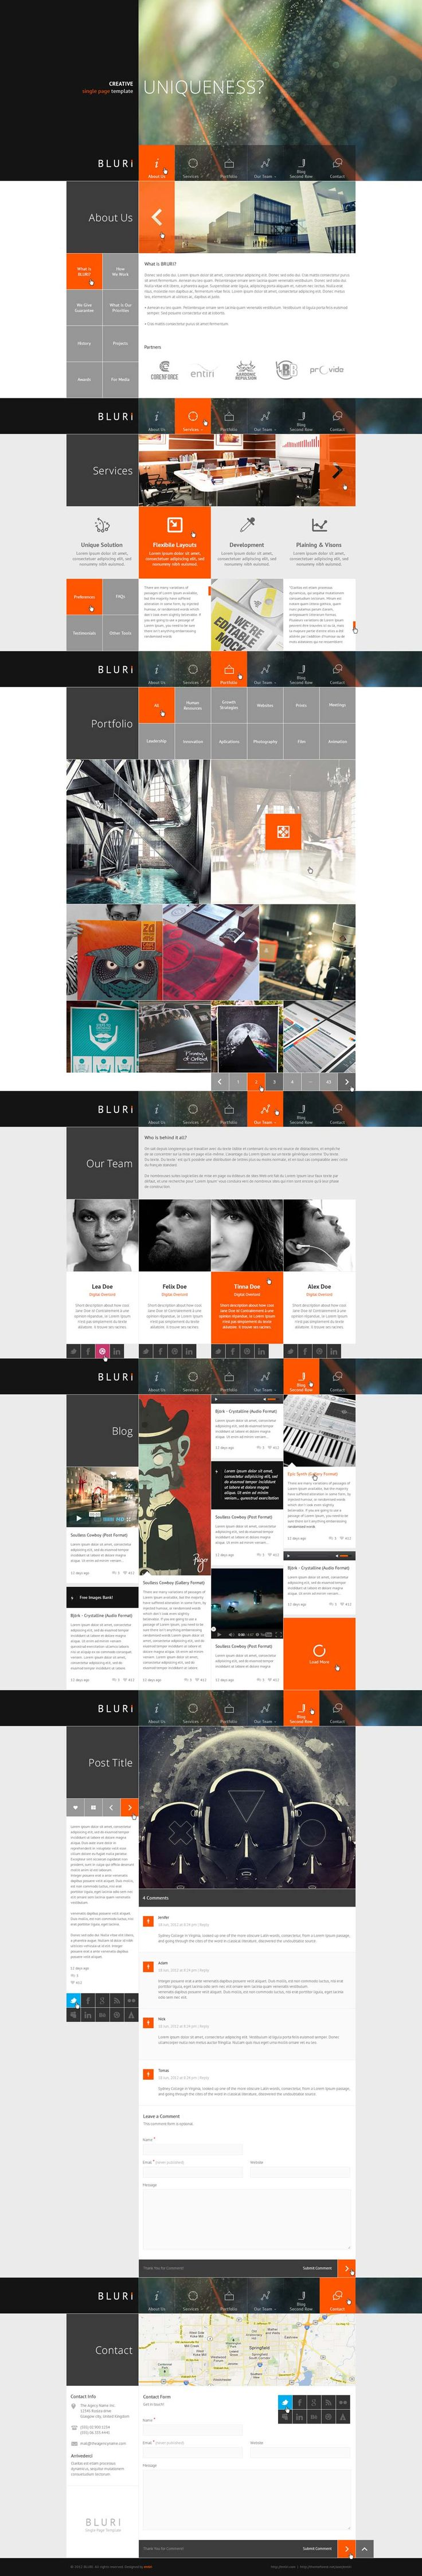 http://themeforest.net/theme_previews/3882654-bluri-single-page-template?index=2| #webdesign #it #web #design #layout #userinterface #website #webdesign <<< repinned by an #advertising #agency from #Hamburg / #Germany - www.BlickeDeeler.de